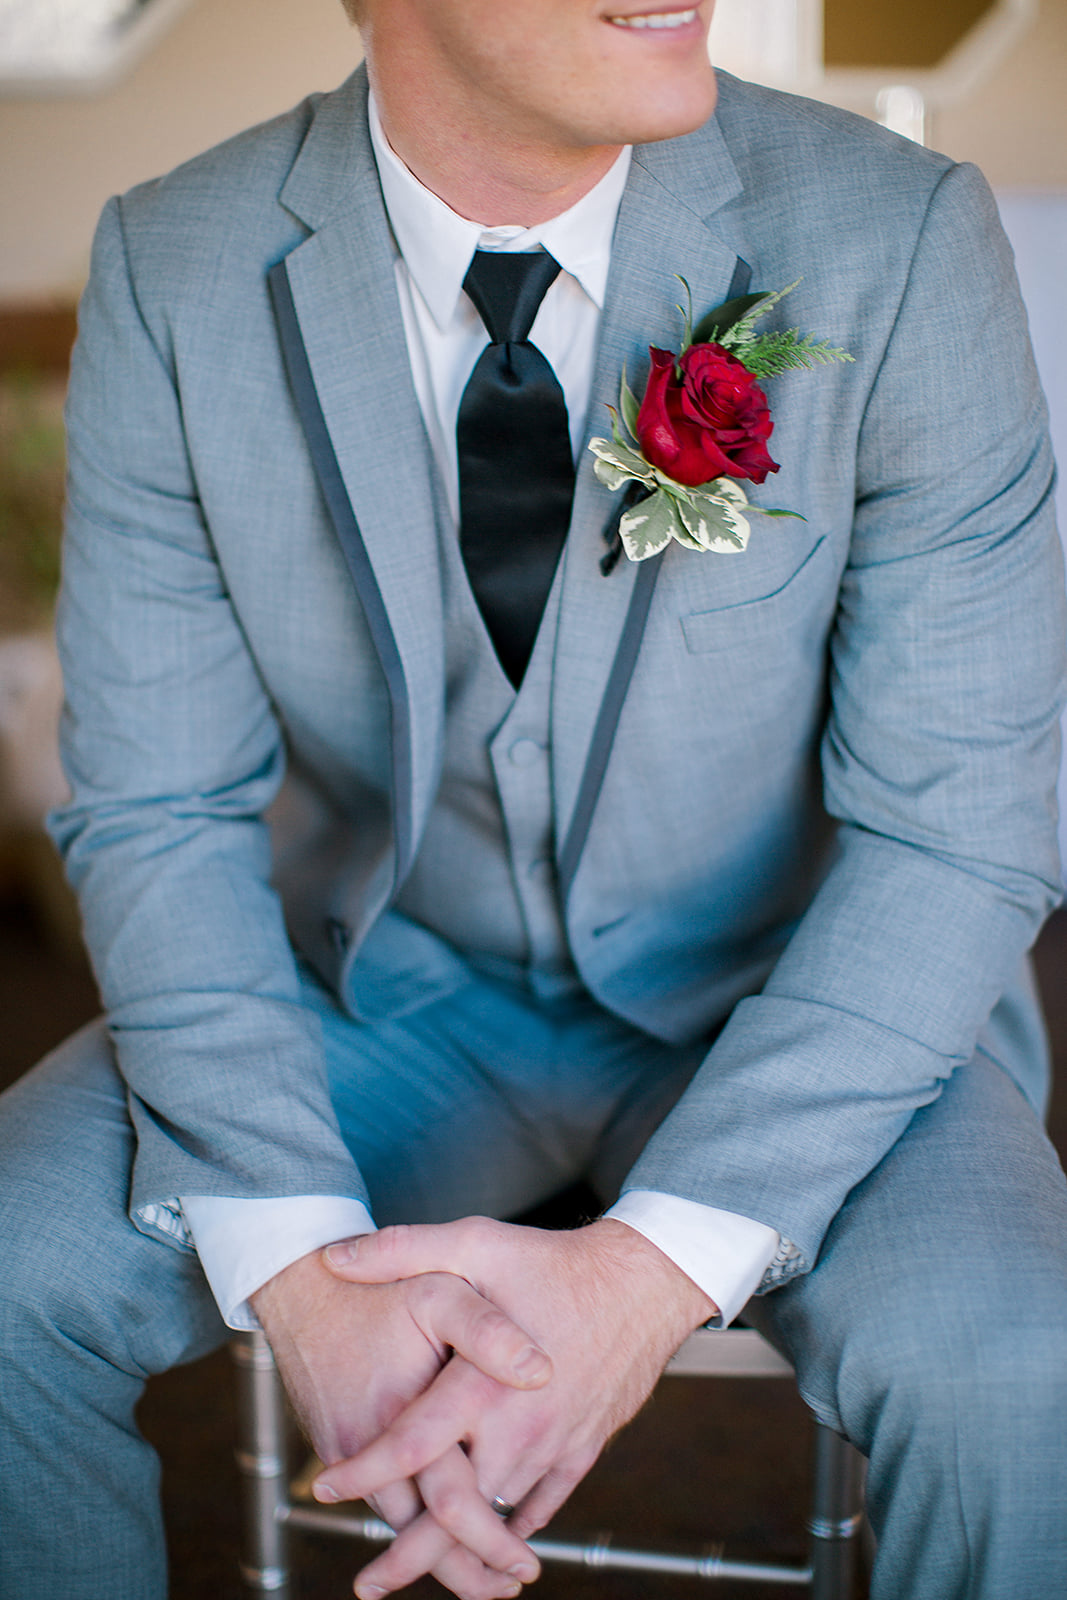 Generation tux for groom, exclusive partner deal through Fab weddings to save money for your wedding | photo by Rachel Graff Photography